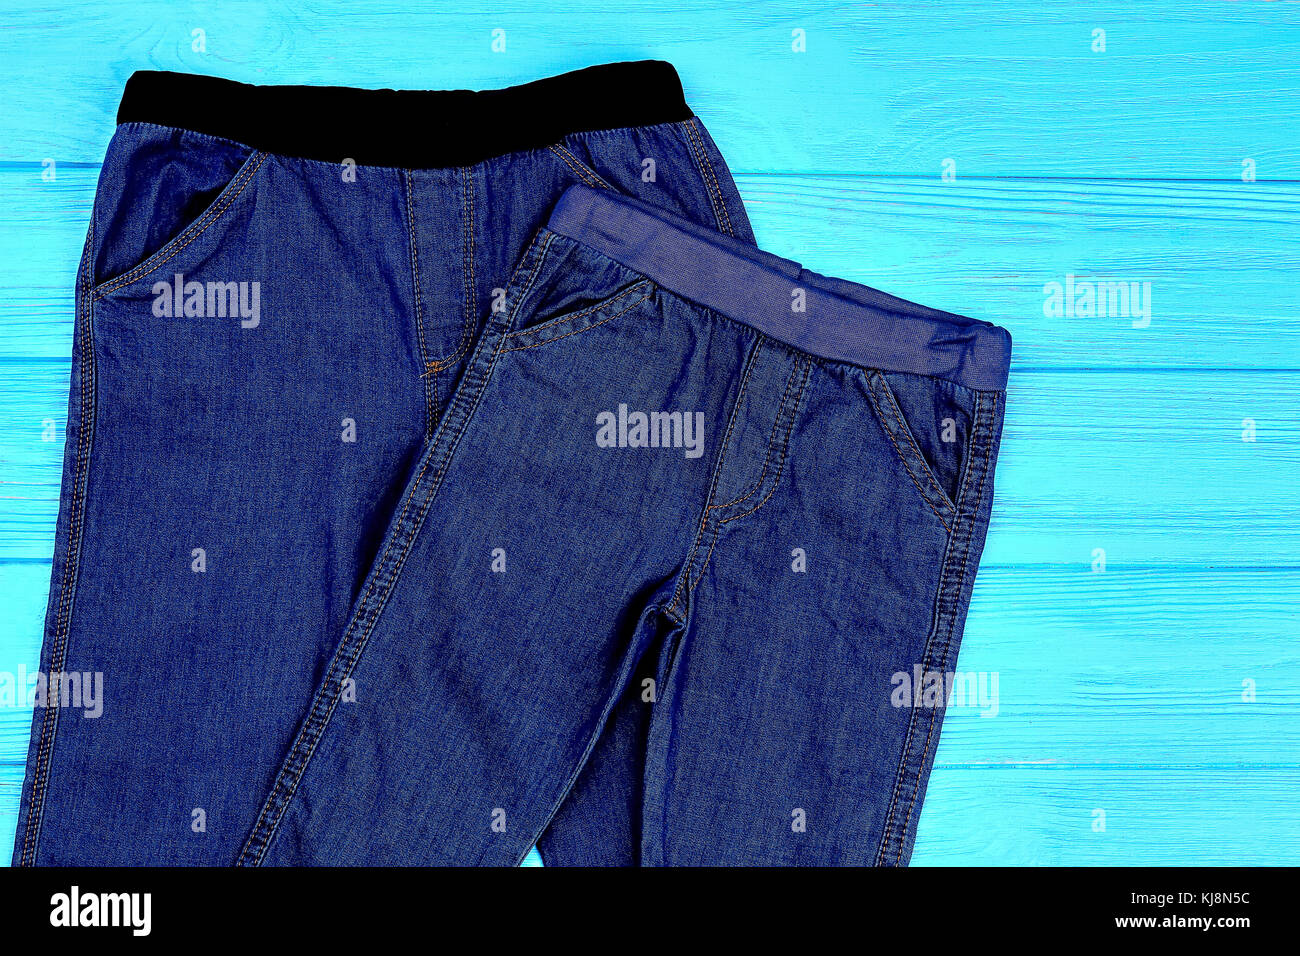 b8a572ce7b5 Close up of dark blue stretch jeans for child. Kids jean leggings for  casual wear. Children trendy denim clothes.